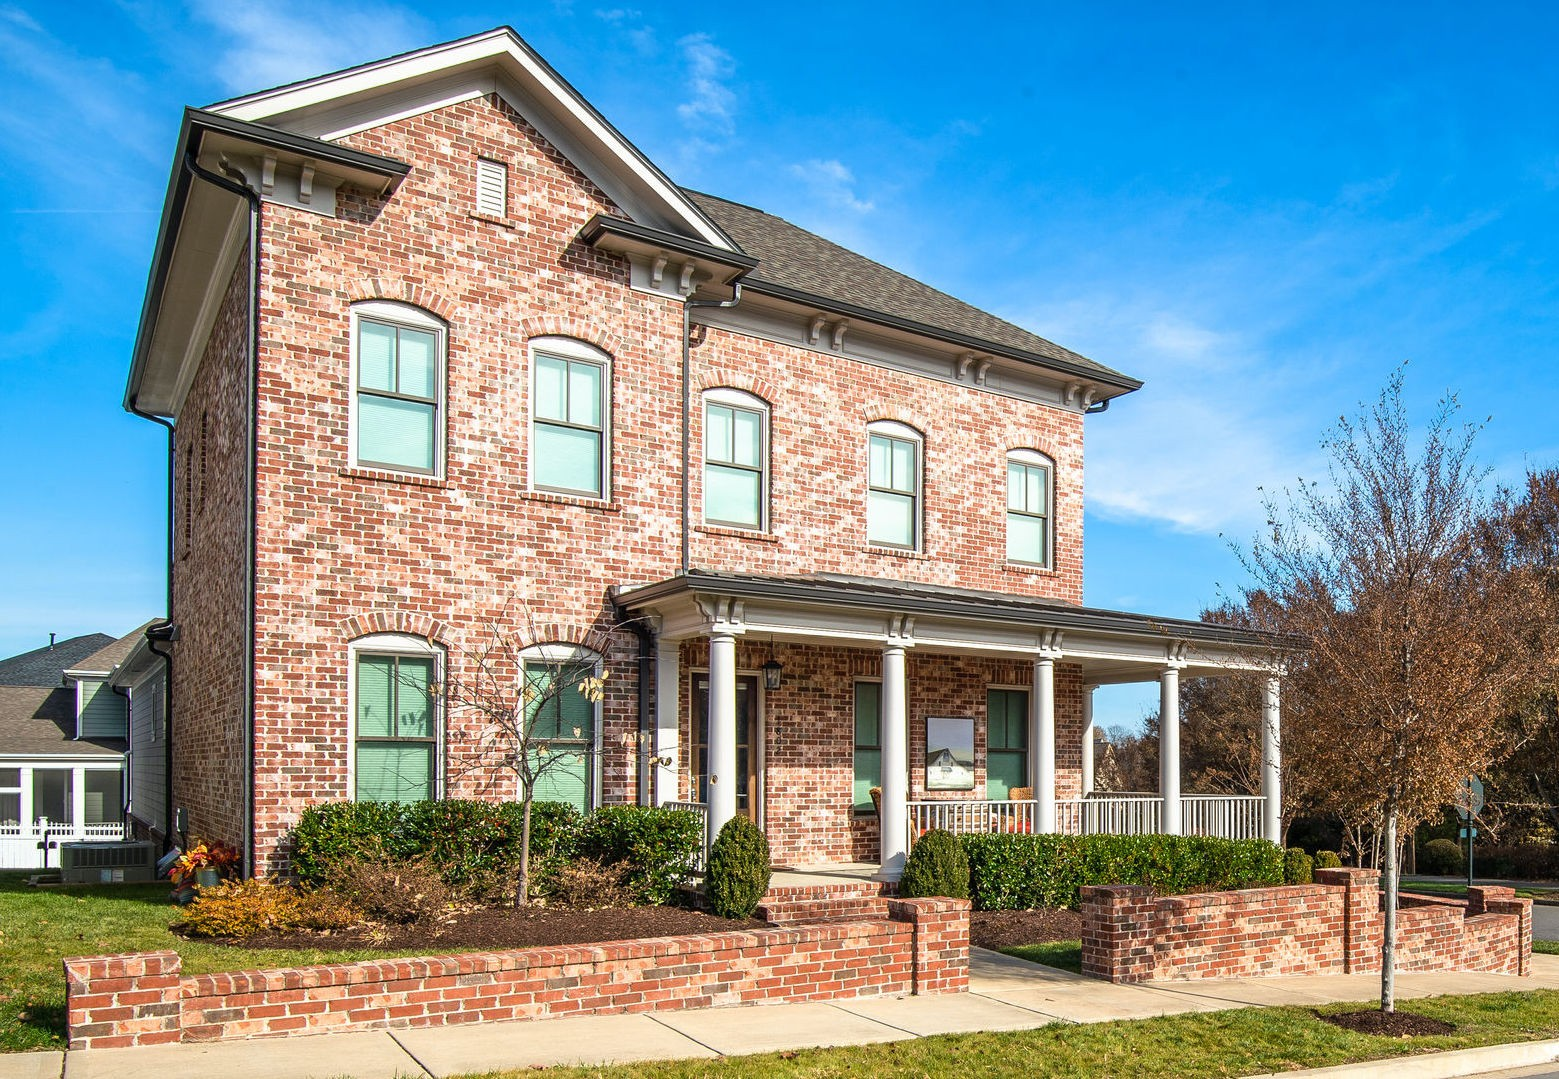 1802 Championship Blvd, Franklin, TN 37064 - Franklin, TN real estate listing